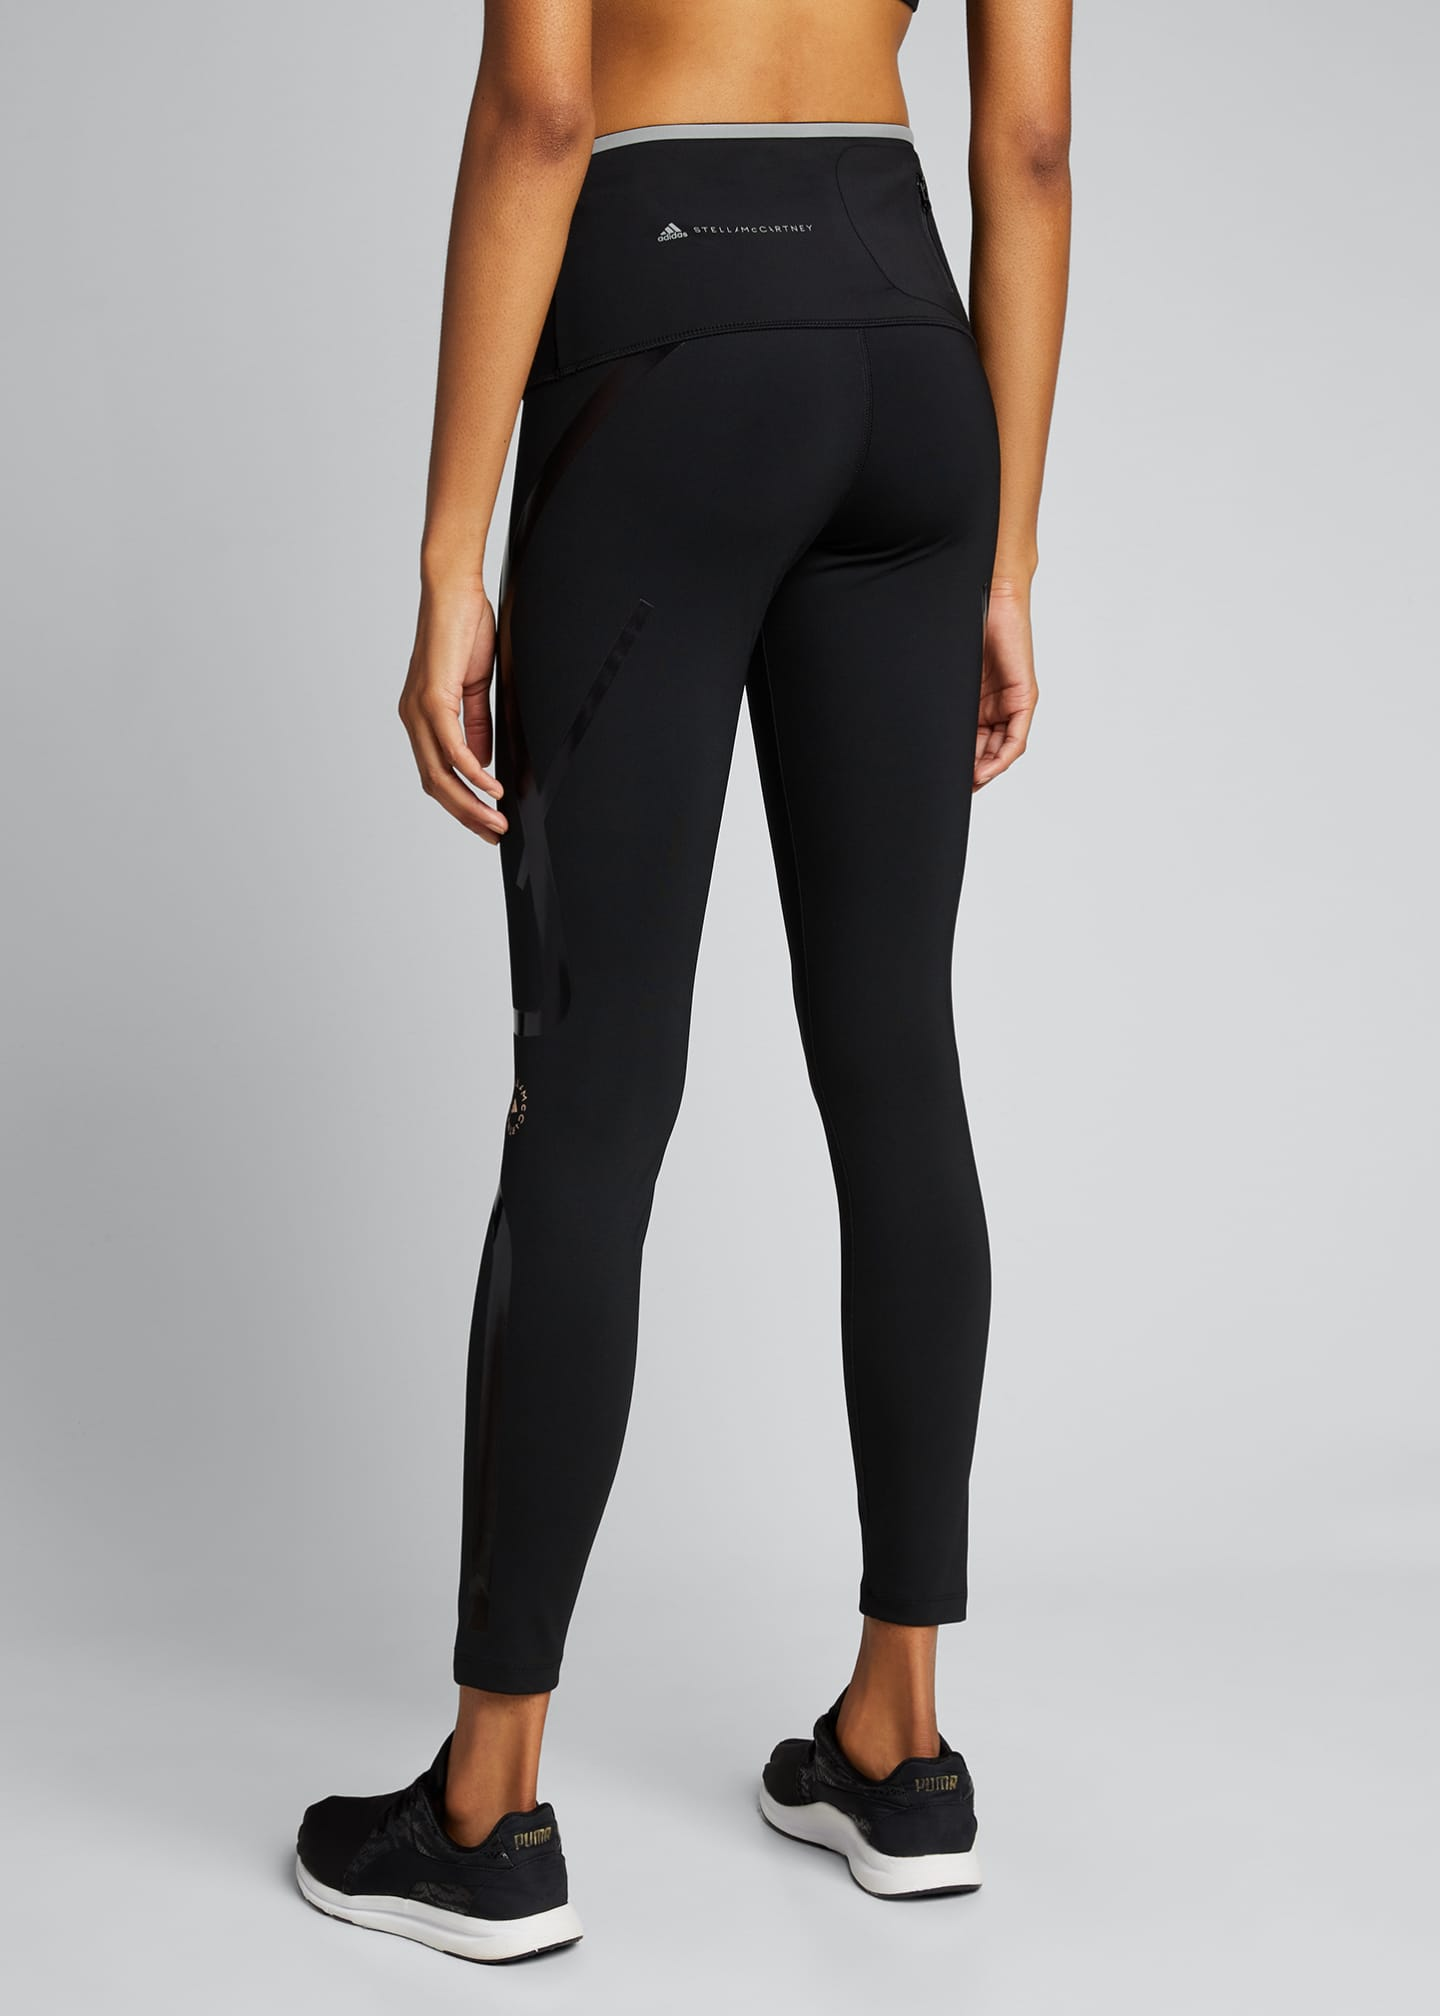 Image 2 of 5: Truepurpose Athletic Tights